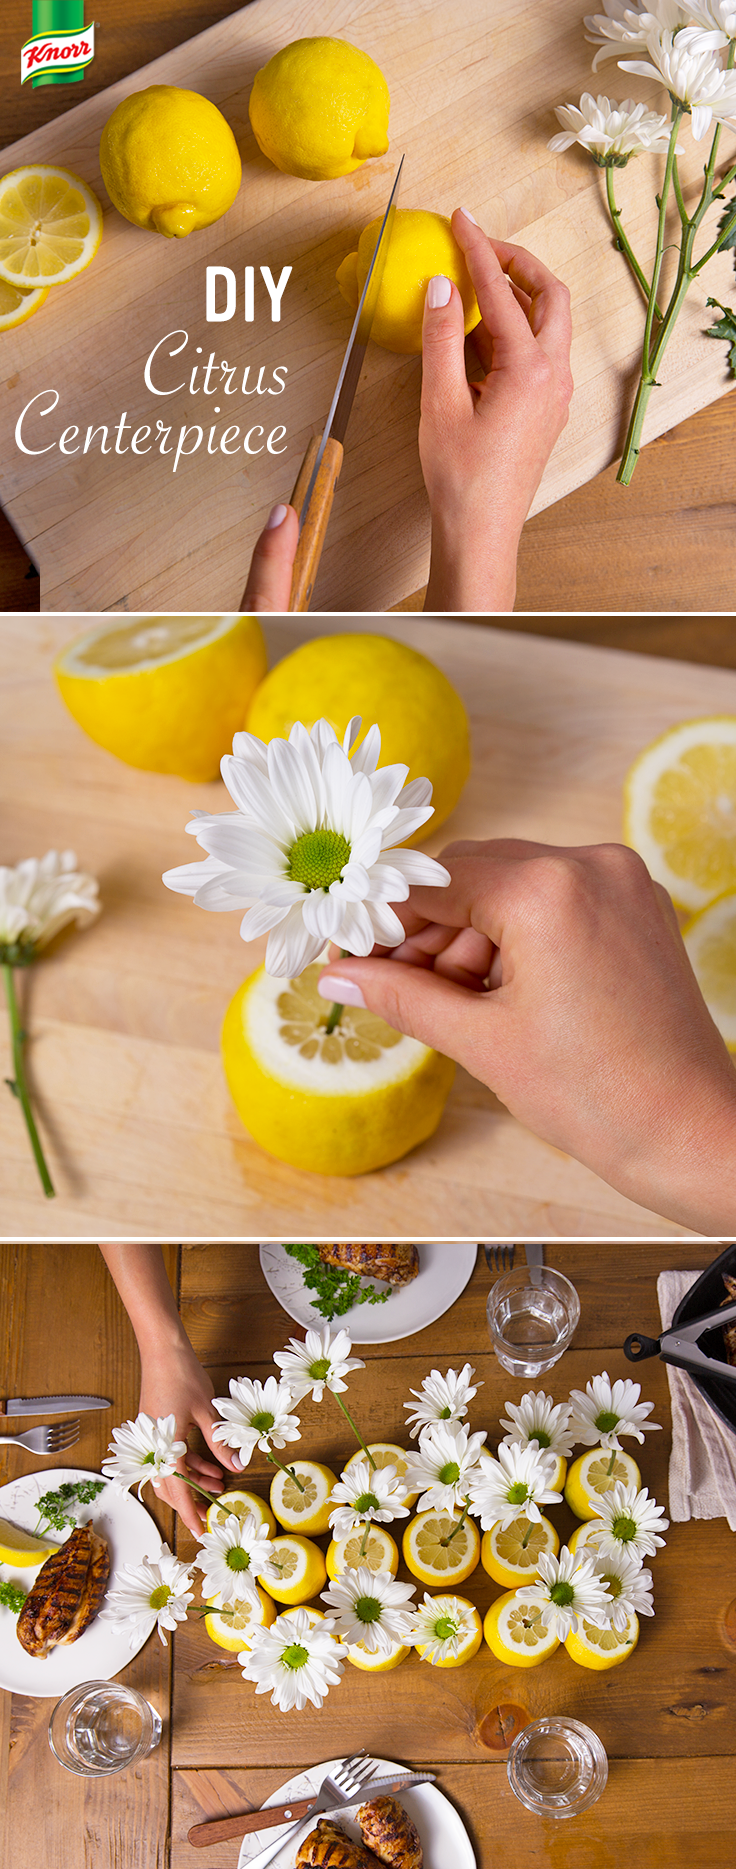 Want a show-stopping yet simple party table decorating idea? Knorr knows the best summer season centerpiece. Place your favorite